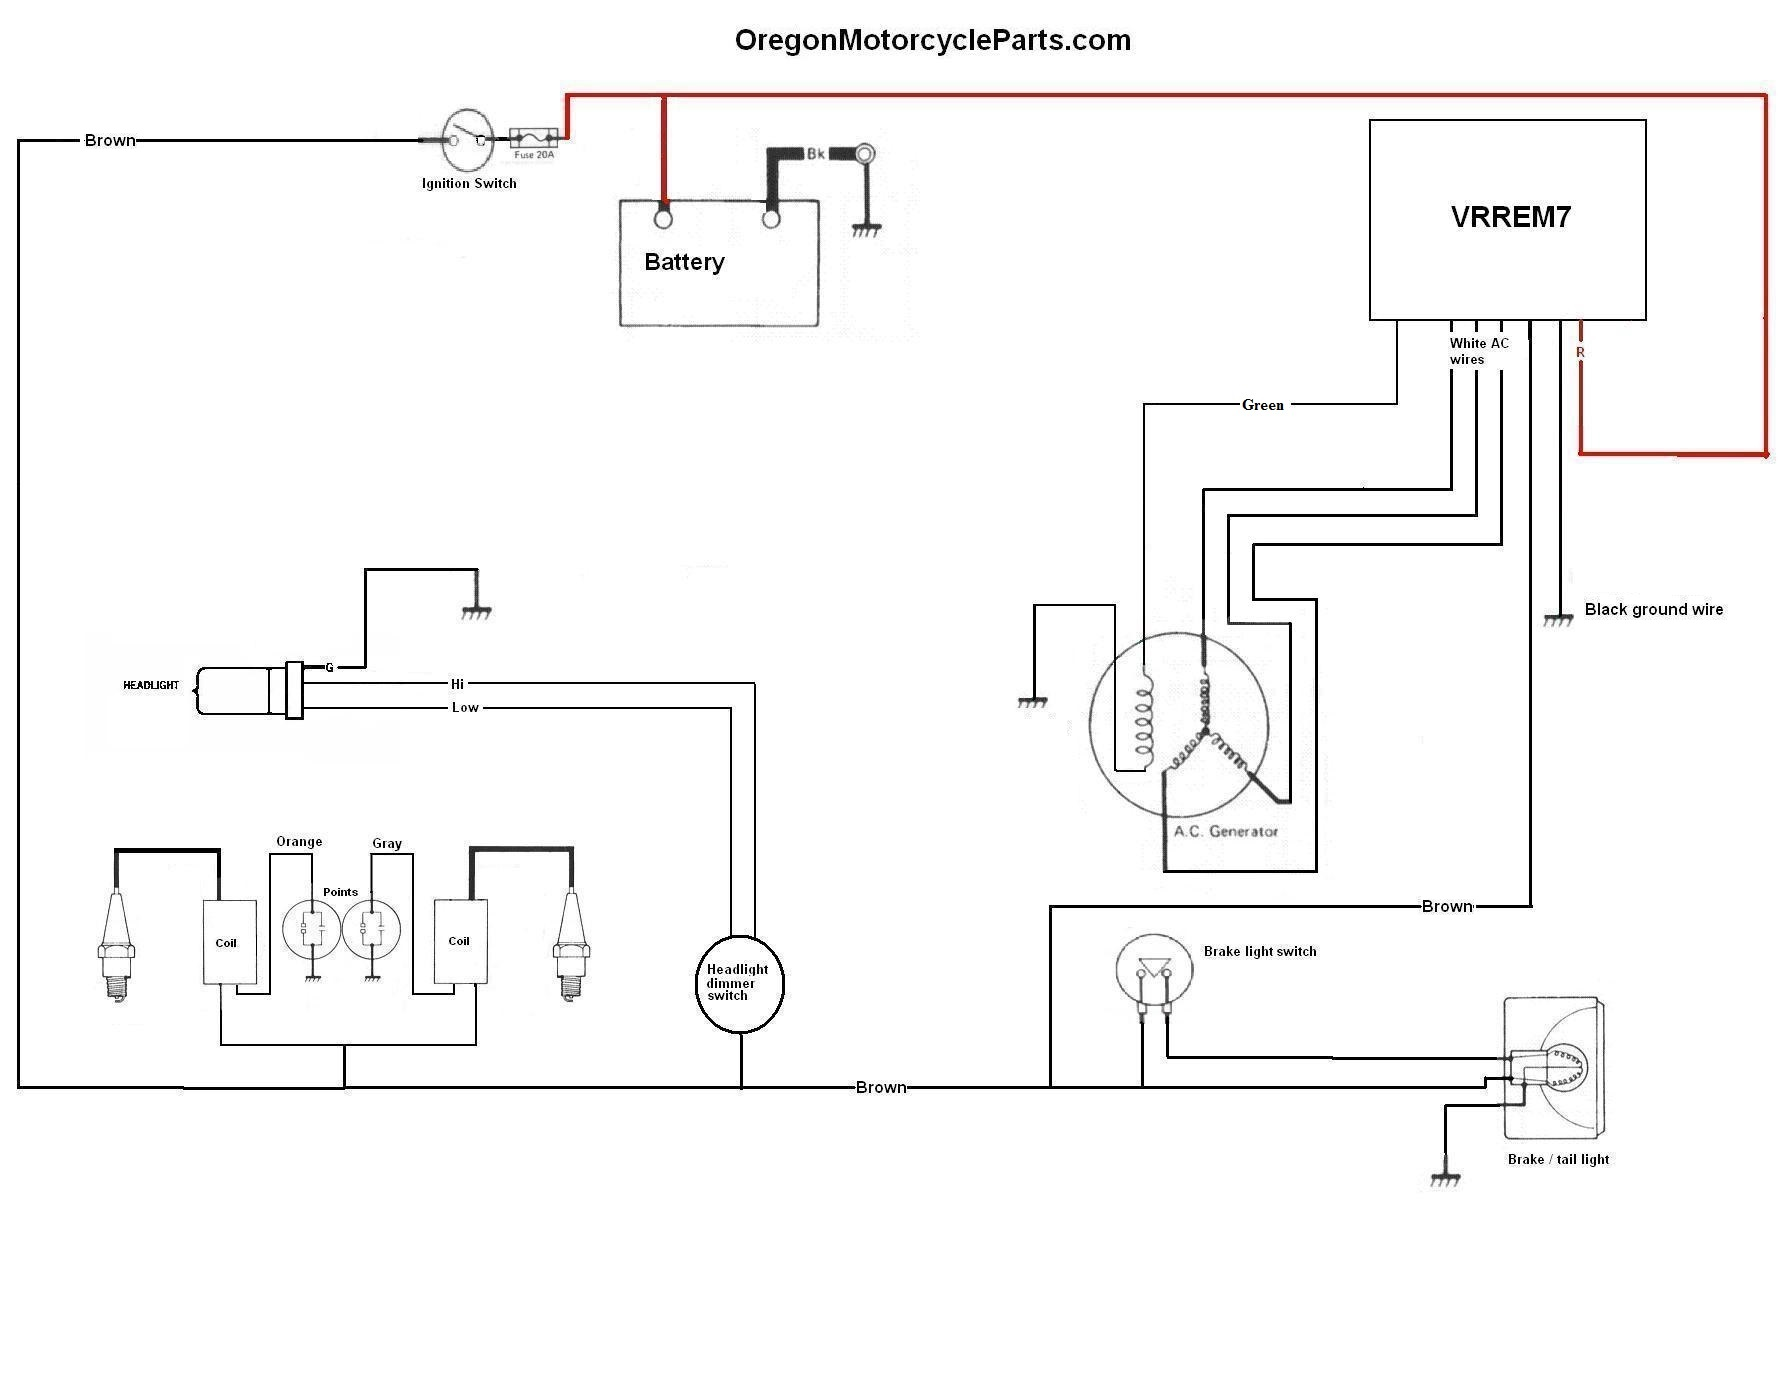 Simple_Yamaha_VRREM72 wiring diagrams rd 250 wiring diagram at bayanpartner.co